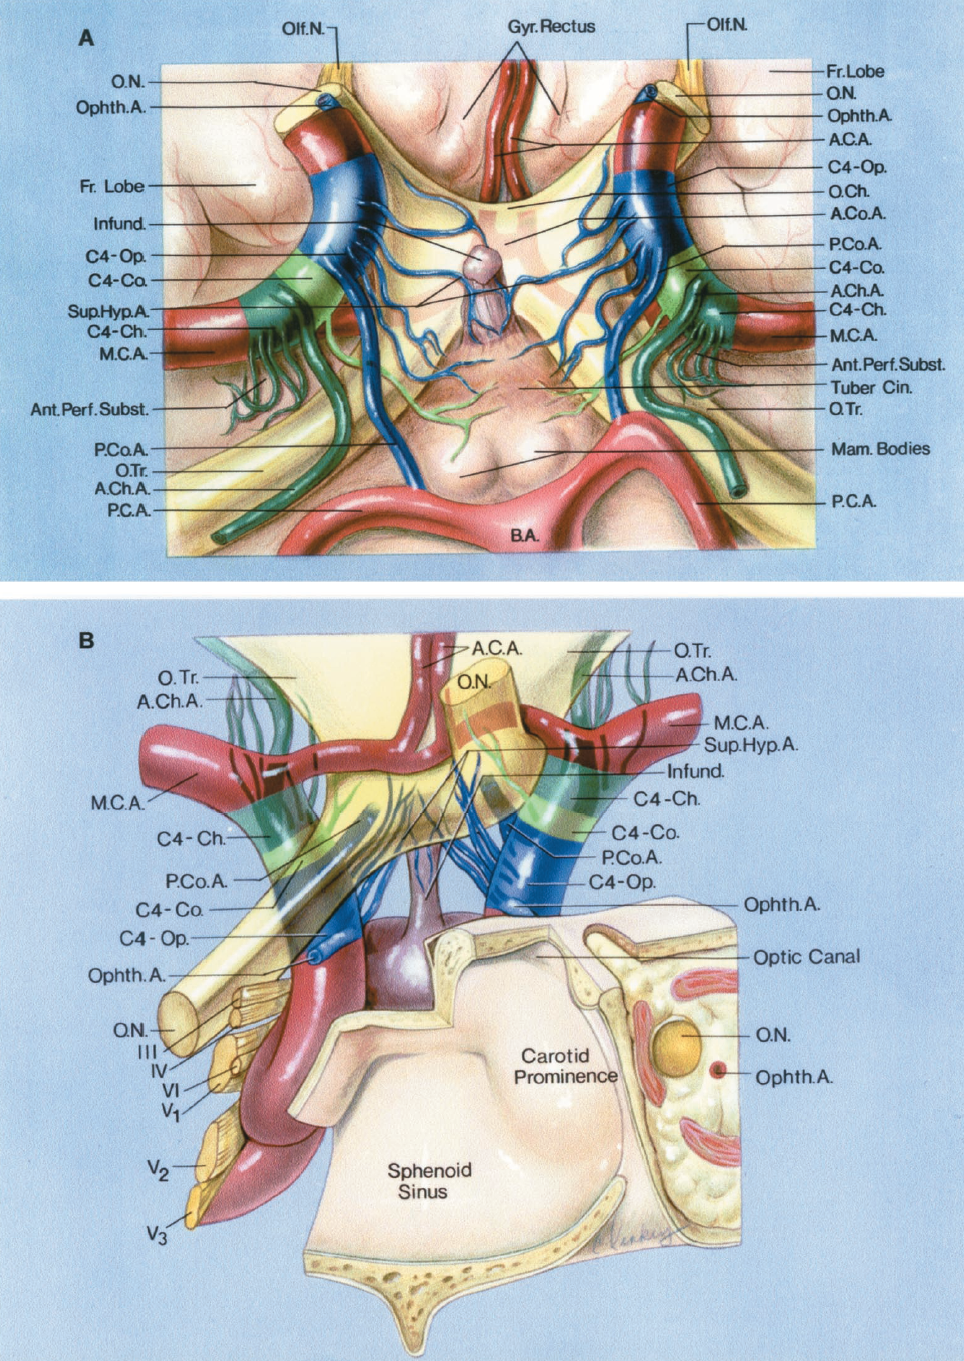 FIGURE 2.4 A-B. Perforating branches of the ICA. A, inferior view. The internal carotid artery gives rise to the ophthalmic, posterior communicating, anterior choroidal, anterior cerebral, and the middle cerebral arteries. The supraclinoid portion of the ICA is divided into three segments based on the origin of these branches: an ophthalmic segment (C4-Op., blue) that extends from the origin of the ophthalmic artery to the origin of the PComA; a communicating segment (C4-Co., light green) that extends from the origin of the PComA to the origin of the AChA; and a choroidal segment (C4-Ch., dark green) that extends from the origin of the AChA to the bifurcation of the ICA into the anterior and middle cerebral arteries. The perforating branches arising from the ophthalmic segment extend to the optic nerve, optic chiasm and the optic tracts, and the floor of the third ventricle around the infundibulum and tuber cinereum. The superior hypophyseal arteries arise from theophthalmic segment and extend to the infundibulum of the pituitary gland. The branches arising from the communicating segment reach the optic tracts, floor of the third ventricle, and the area around the mamillary bodies. The perforating branches of the choroidal segment pass upward and enter the anterior perforated substance. The posterior cerebral arteries arise from the basilar artery and pass backward below the optic tracts. The ACA and AComA course above the optic chiasm and pass between the frontal lobes. The olfactory nerves are lateral to the gyrus rectus. B, anterior view. The left optic nerve has been divided near its entrance into the optic canal and elevated to give a clearer view of the perforating branches. The ophthalmic artery arises above the cavernous sinus. The carotid artery courses through the cavernous sinus and then laterally and produces a prominence in the wall of the sphenoid sinus before giving rise to the ophthalmic artery. The oculomotor, trochlear, abducens, and the ophthalmic